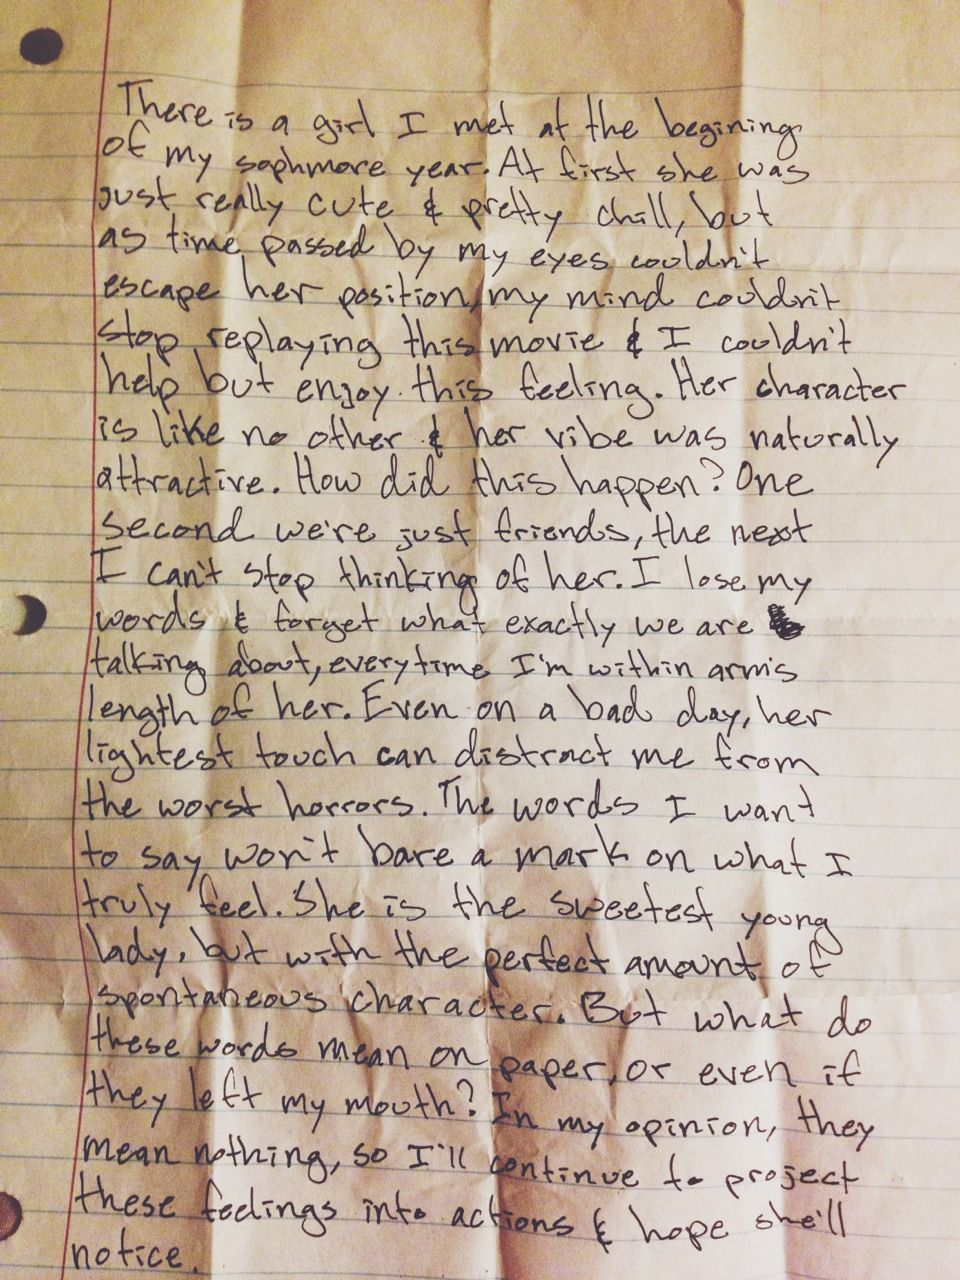 im seriously obsessed with this love letter  preach